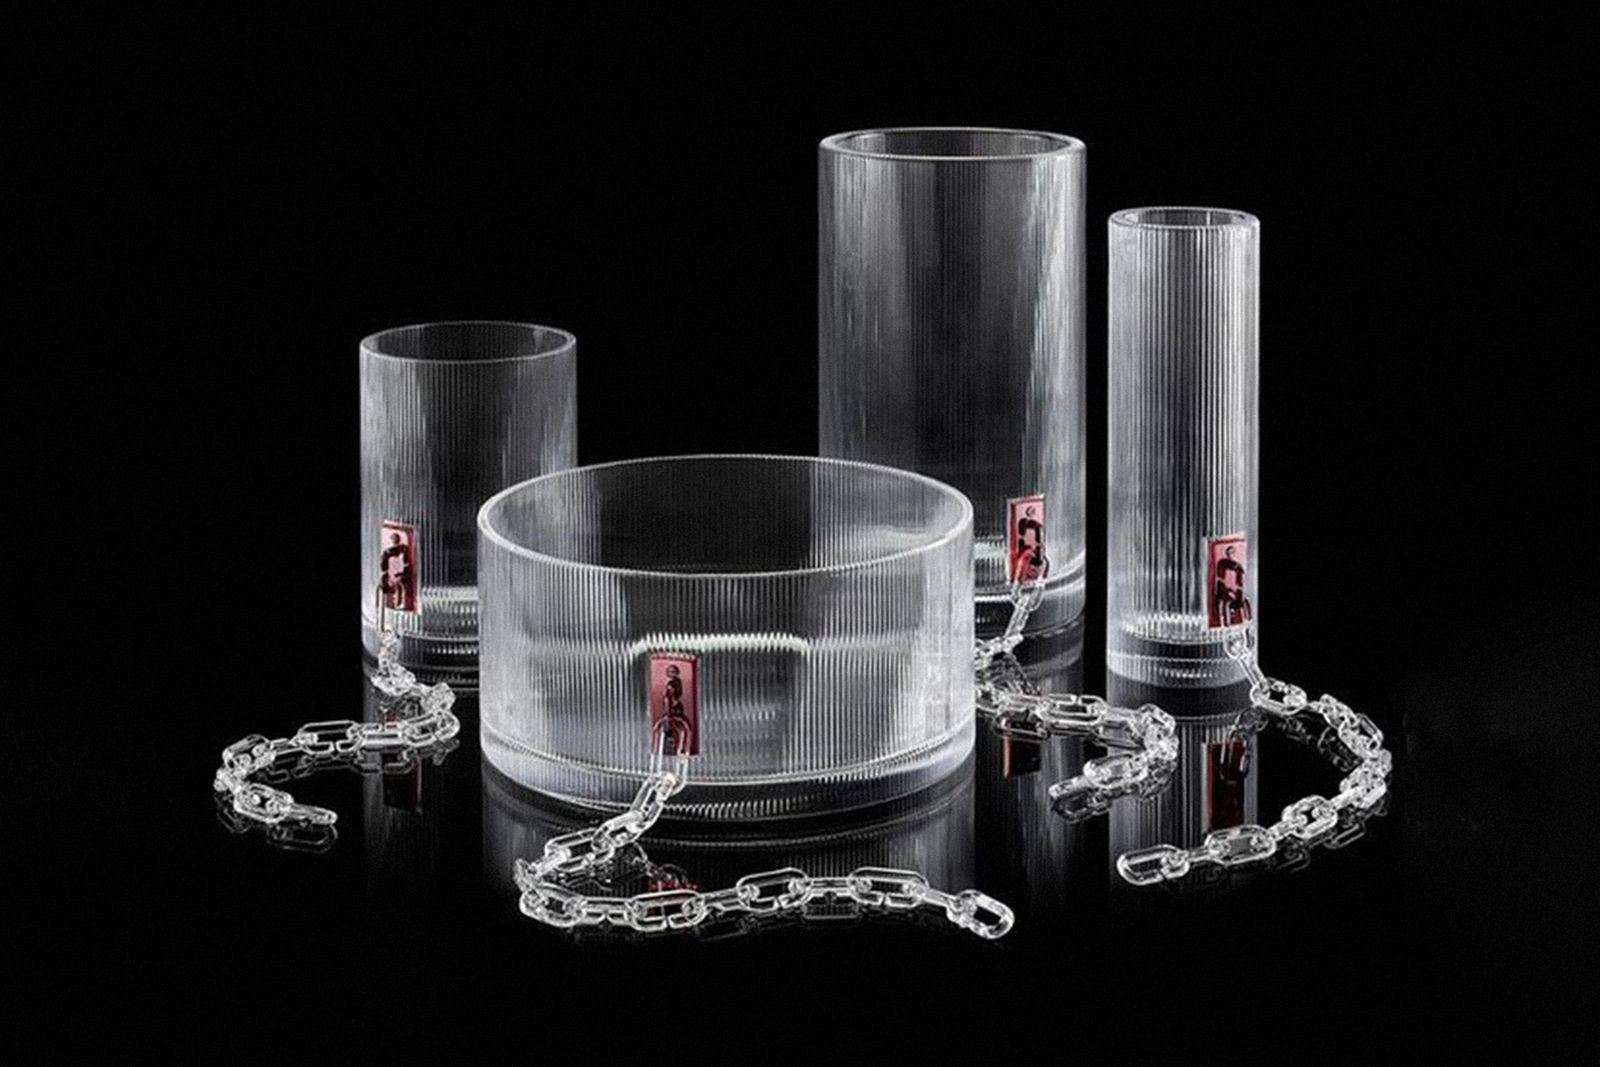 virgil-abloh-baccarat-crystal-clear-collection-01